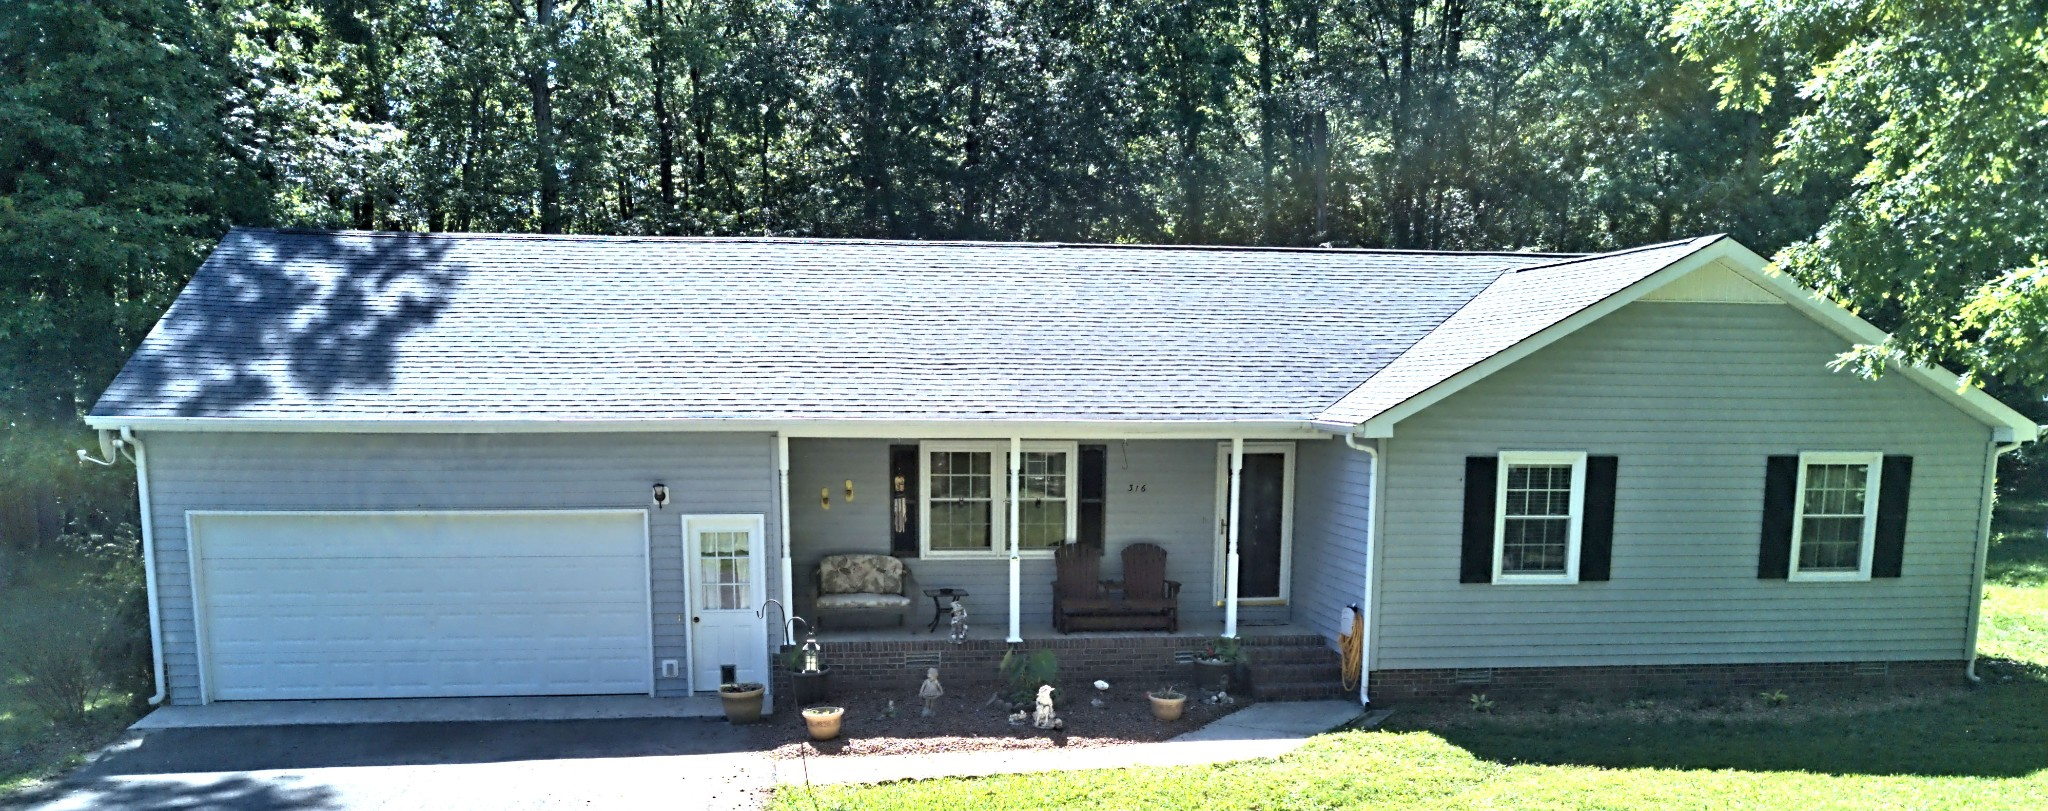 316 Marks Ave Property Photo - Tullahoma, TN real estate listing